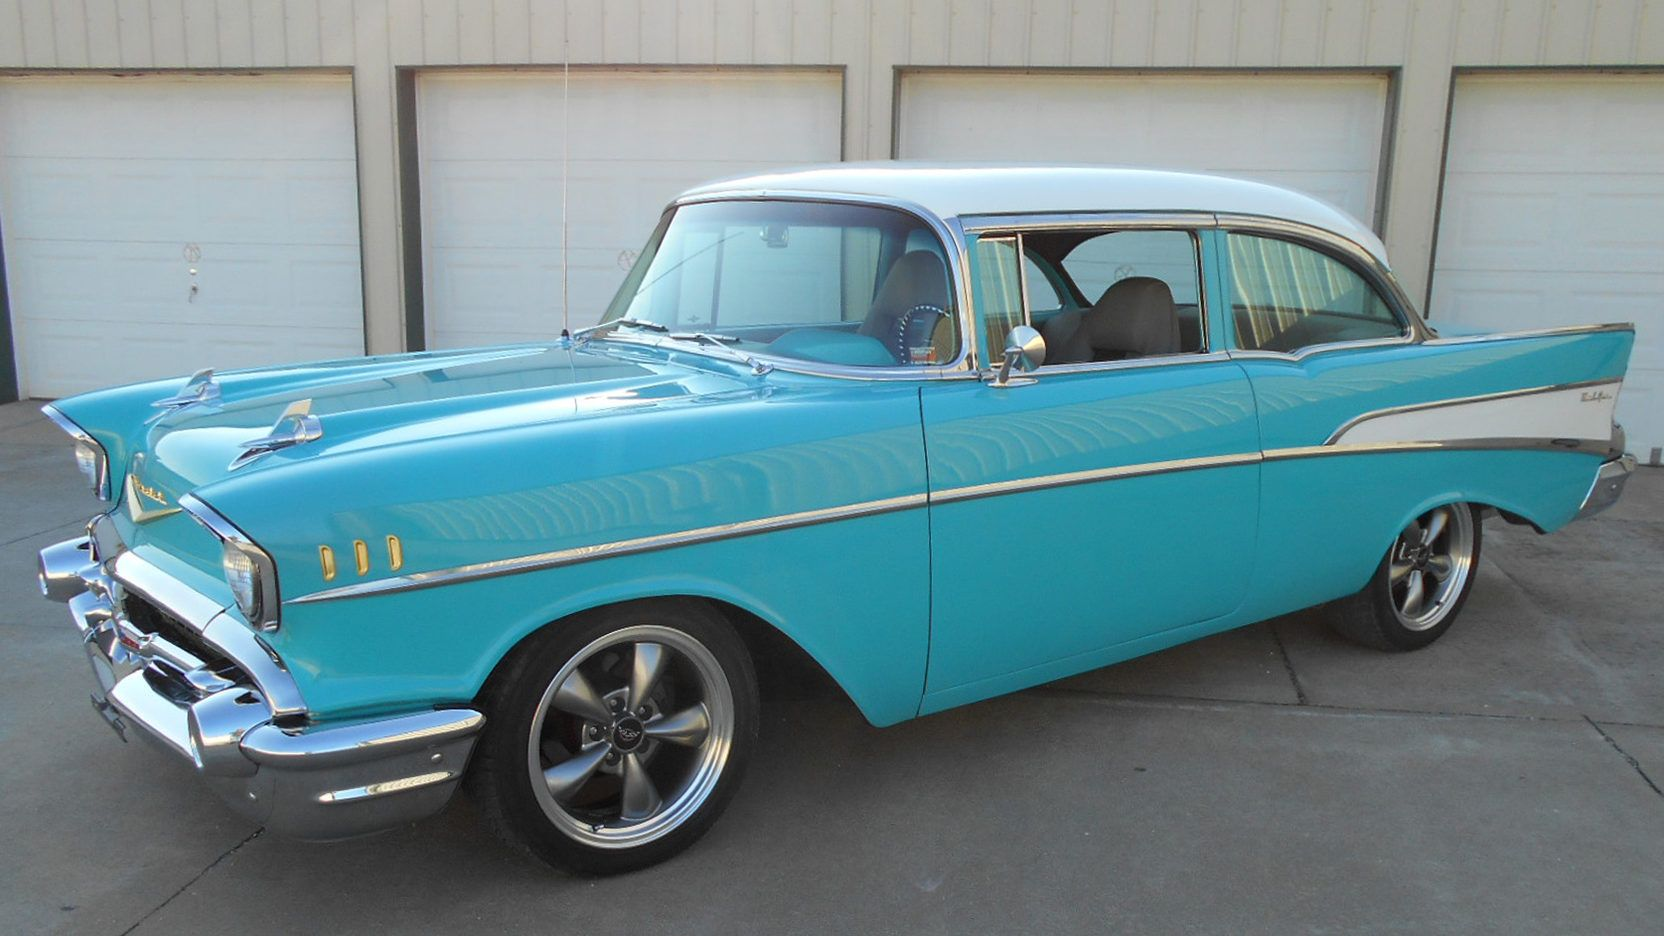 1957 Chevrolet Bel Air presented as Lot S64 at Kansas City, MO ...